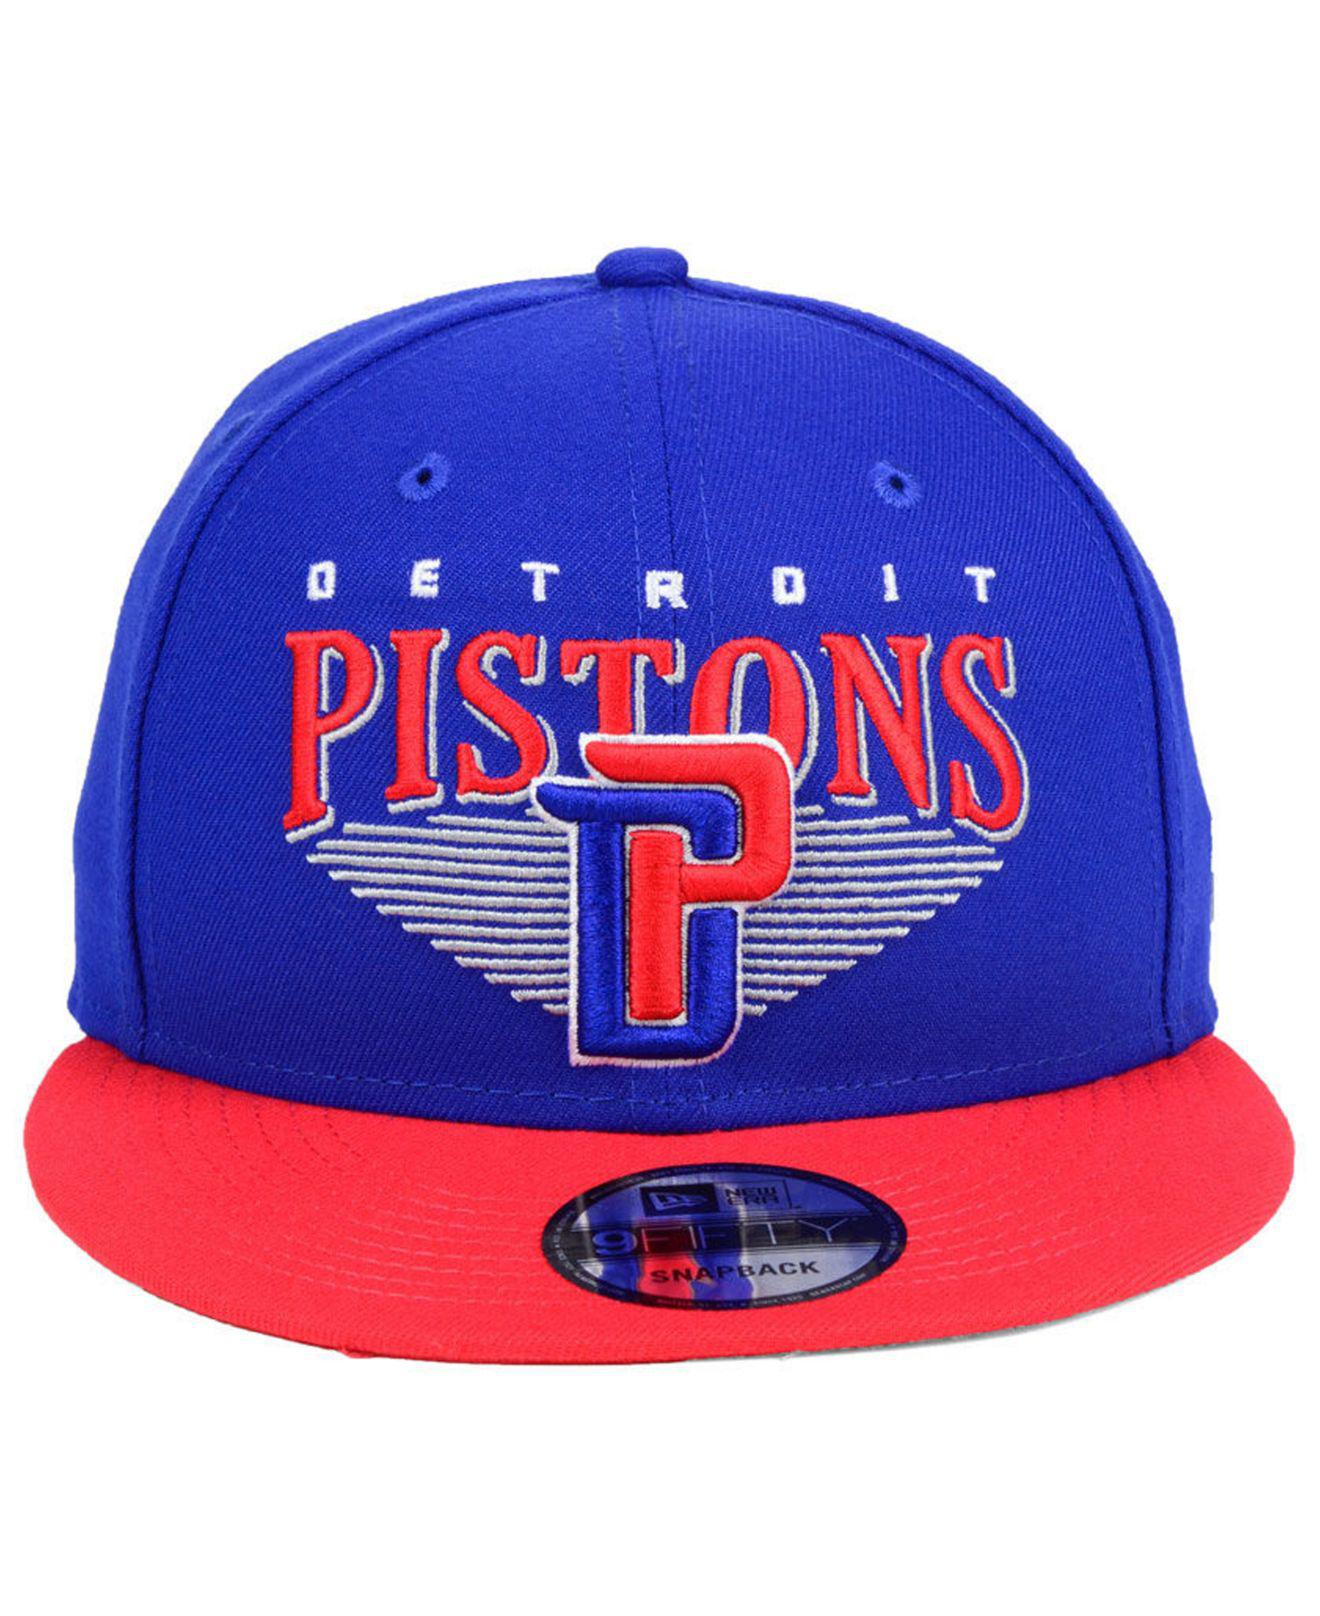 the best attitude 70dd7 49081 ... uk lyst ktz detroit pistons retro triangle 9fifty snapback cap in blue  for men 086c2 a391e